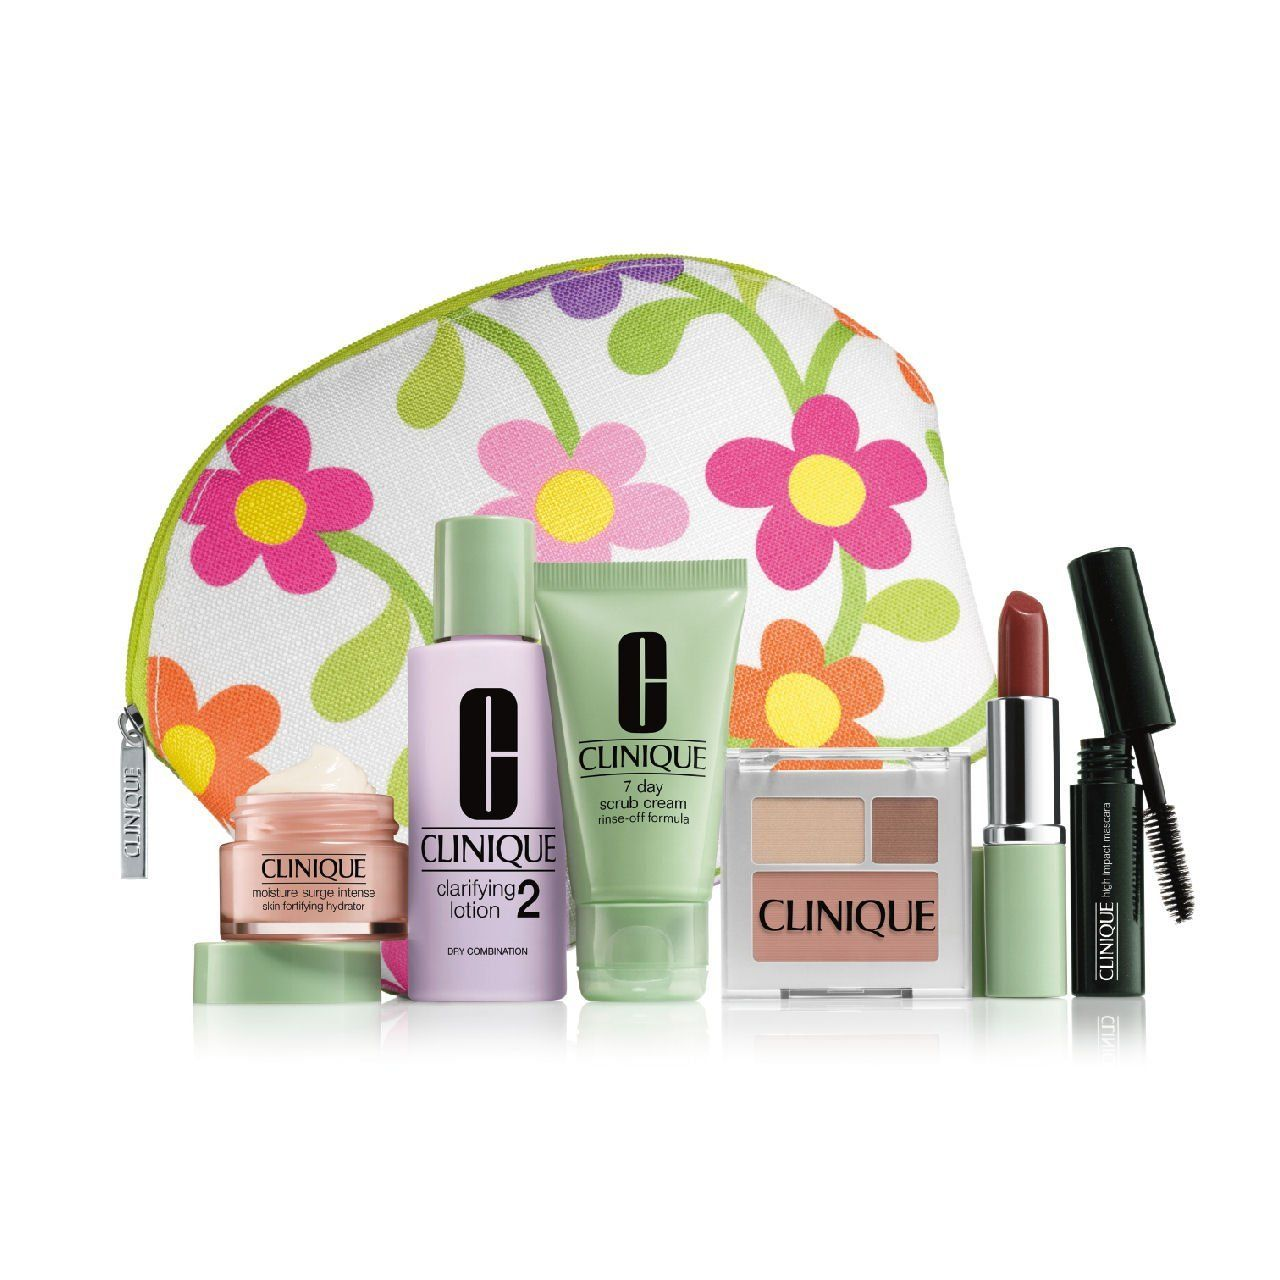 Clinique 2013 7 Piece Skincare Makeup Gift Set with